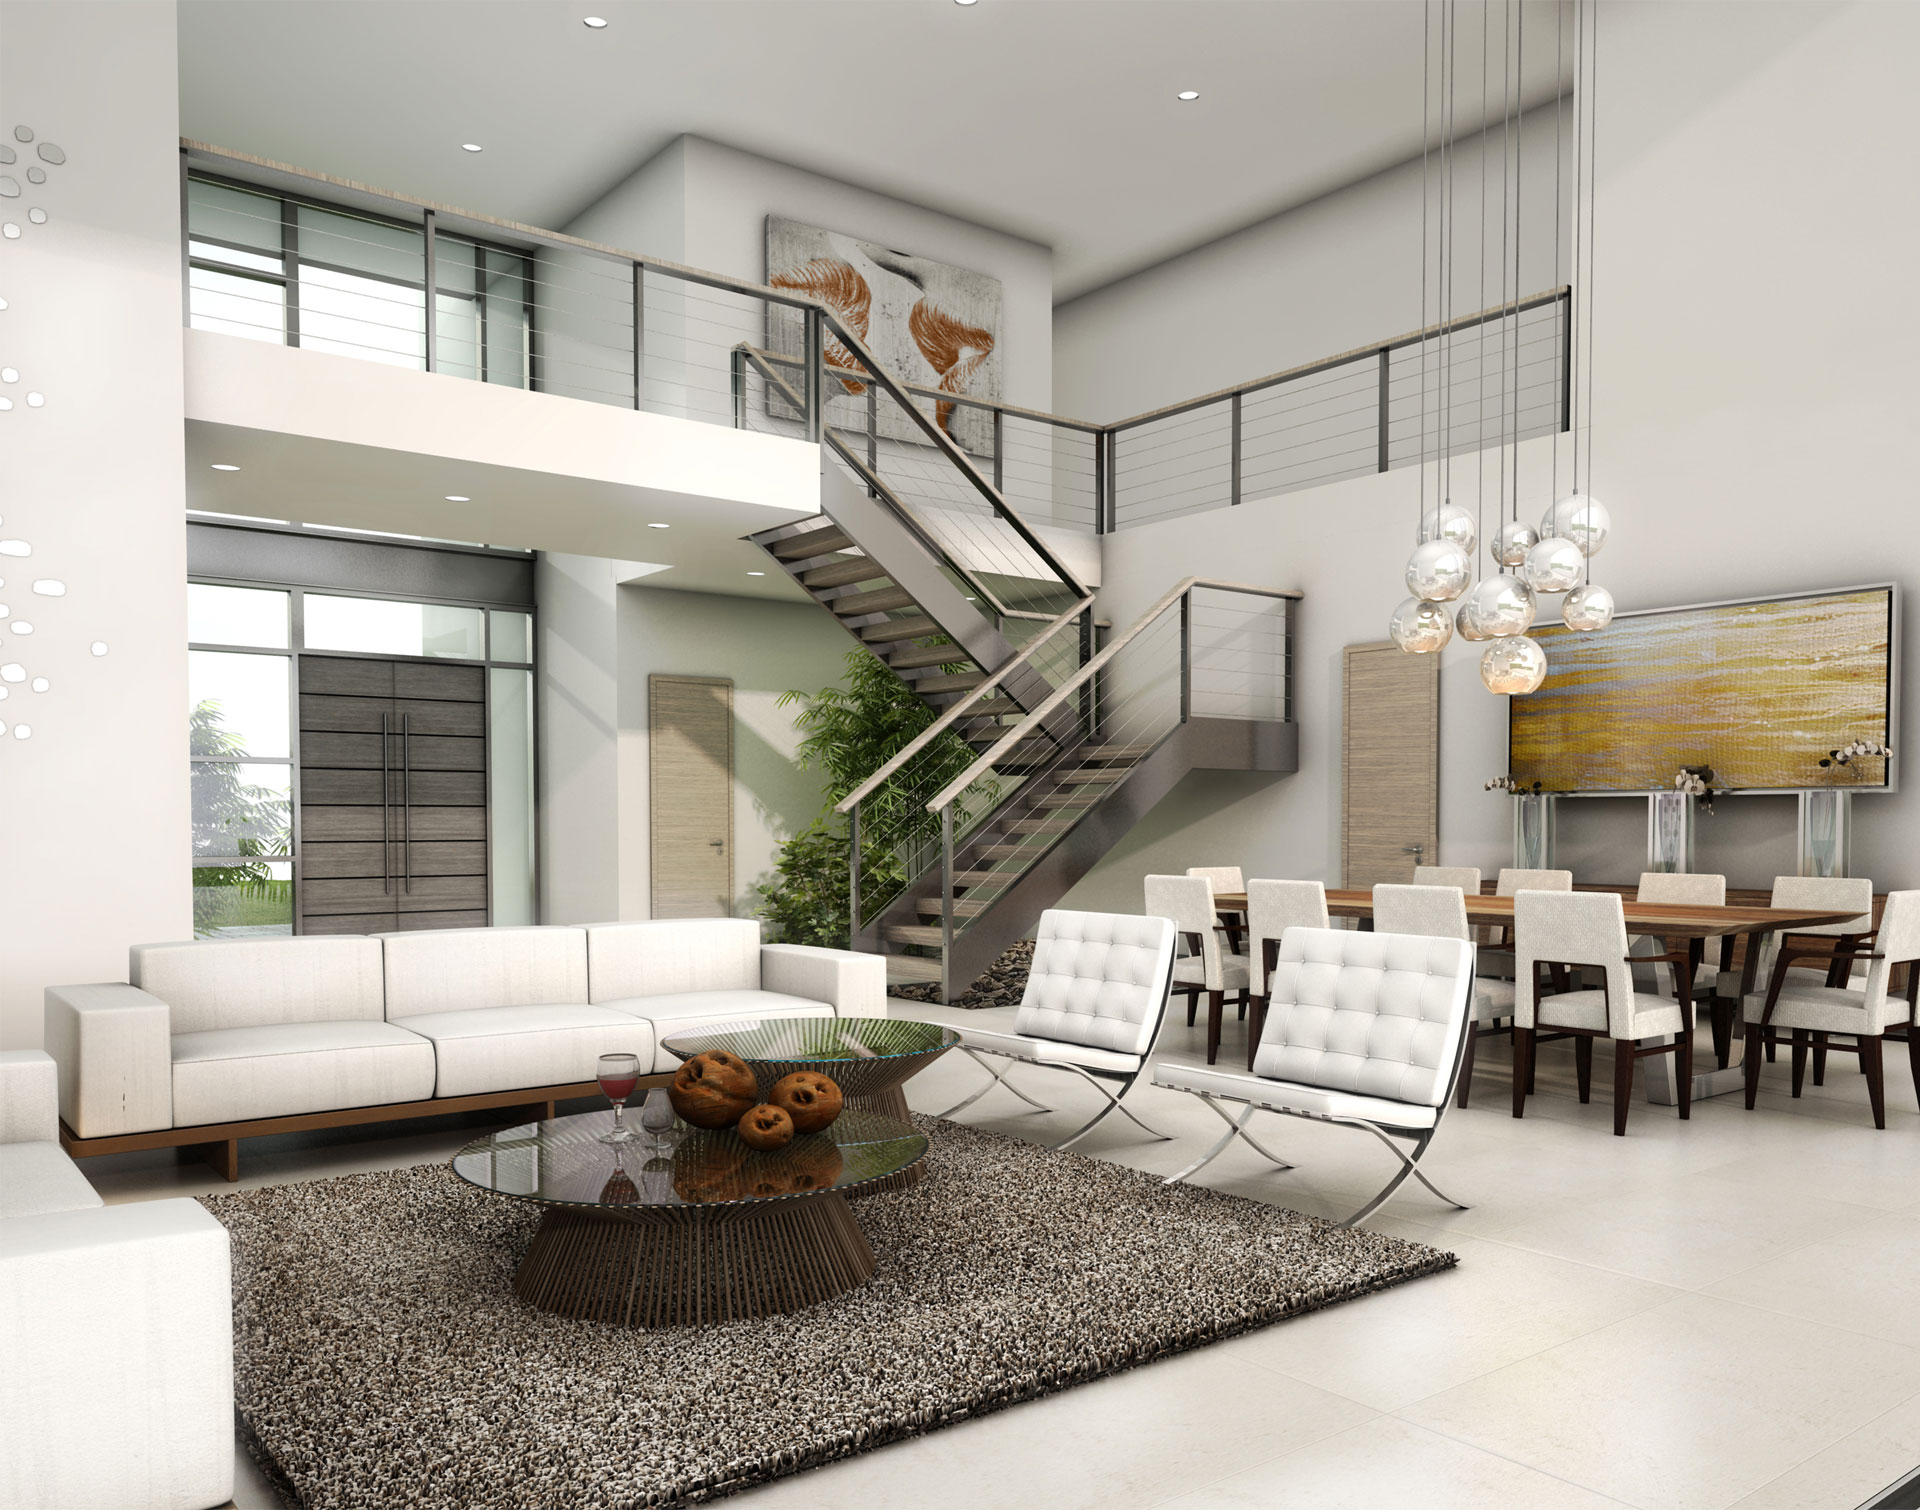 Interior Design living room project in 1350 Bay Harbor, Florida